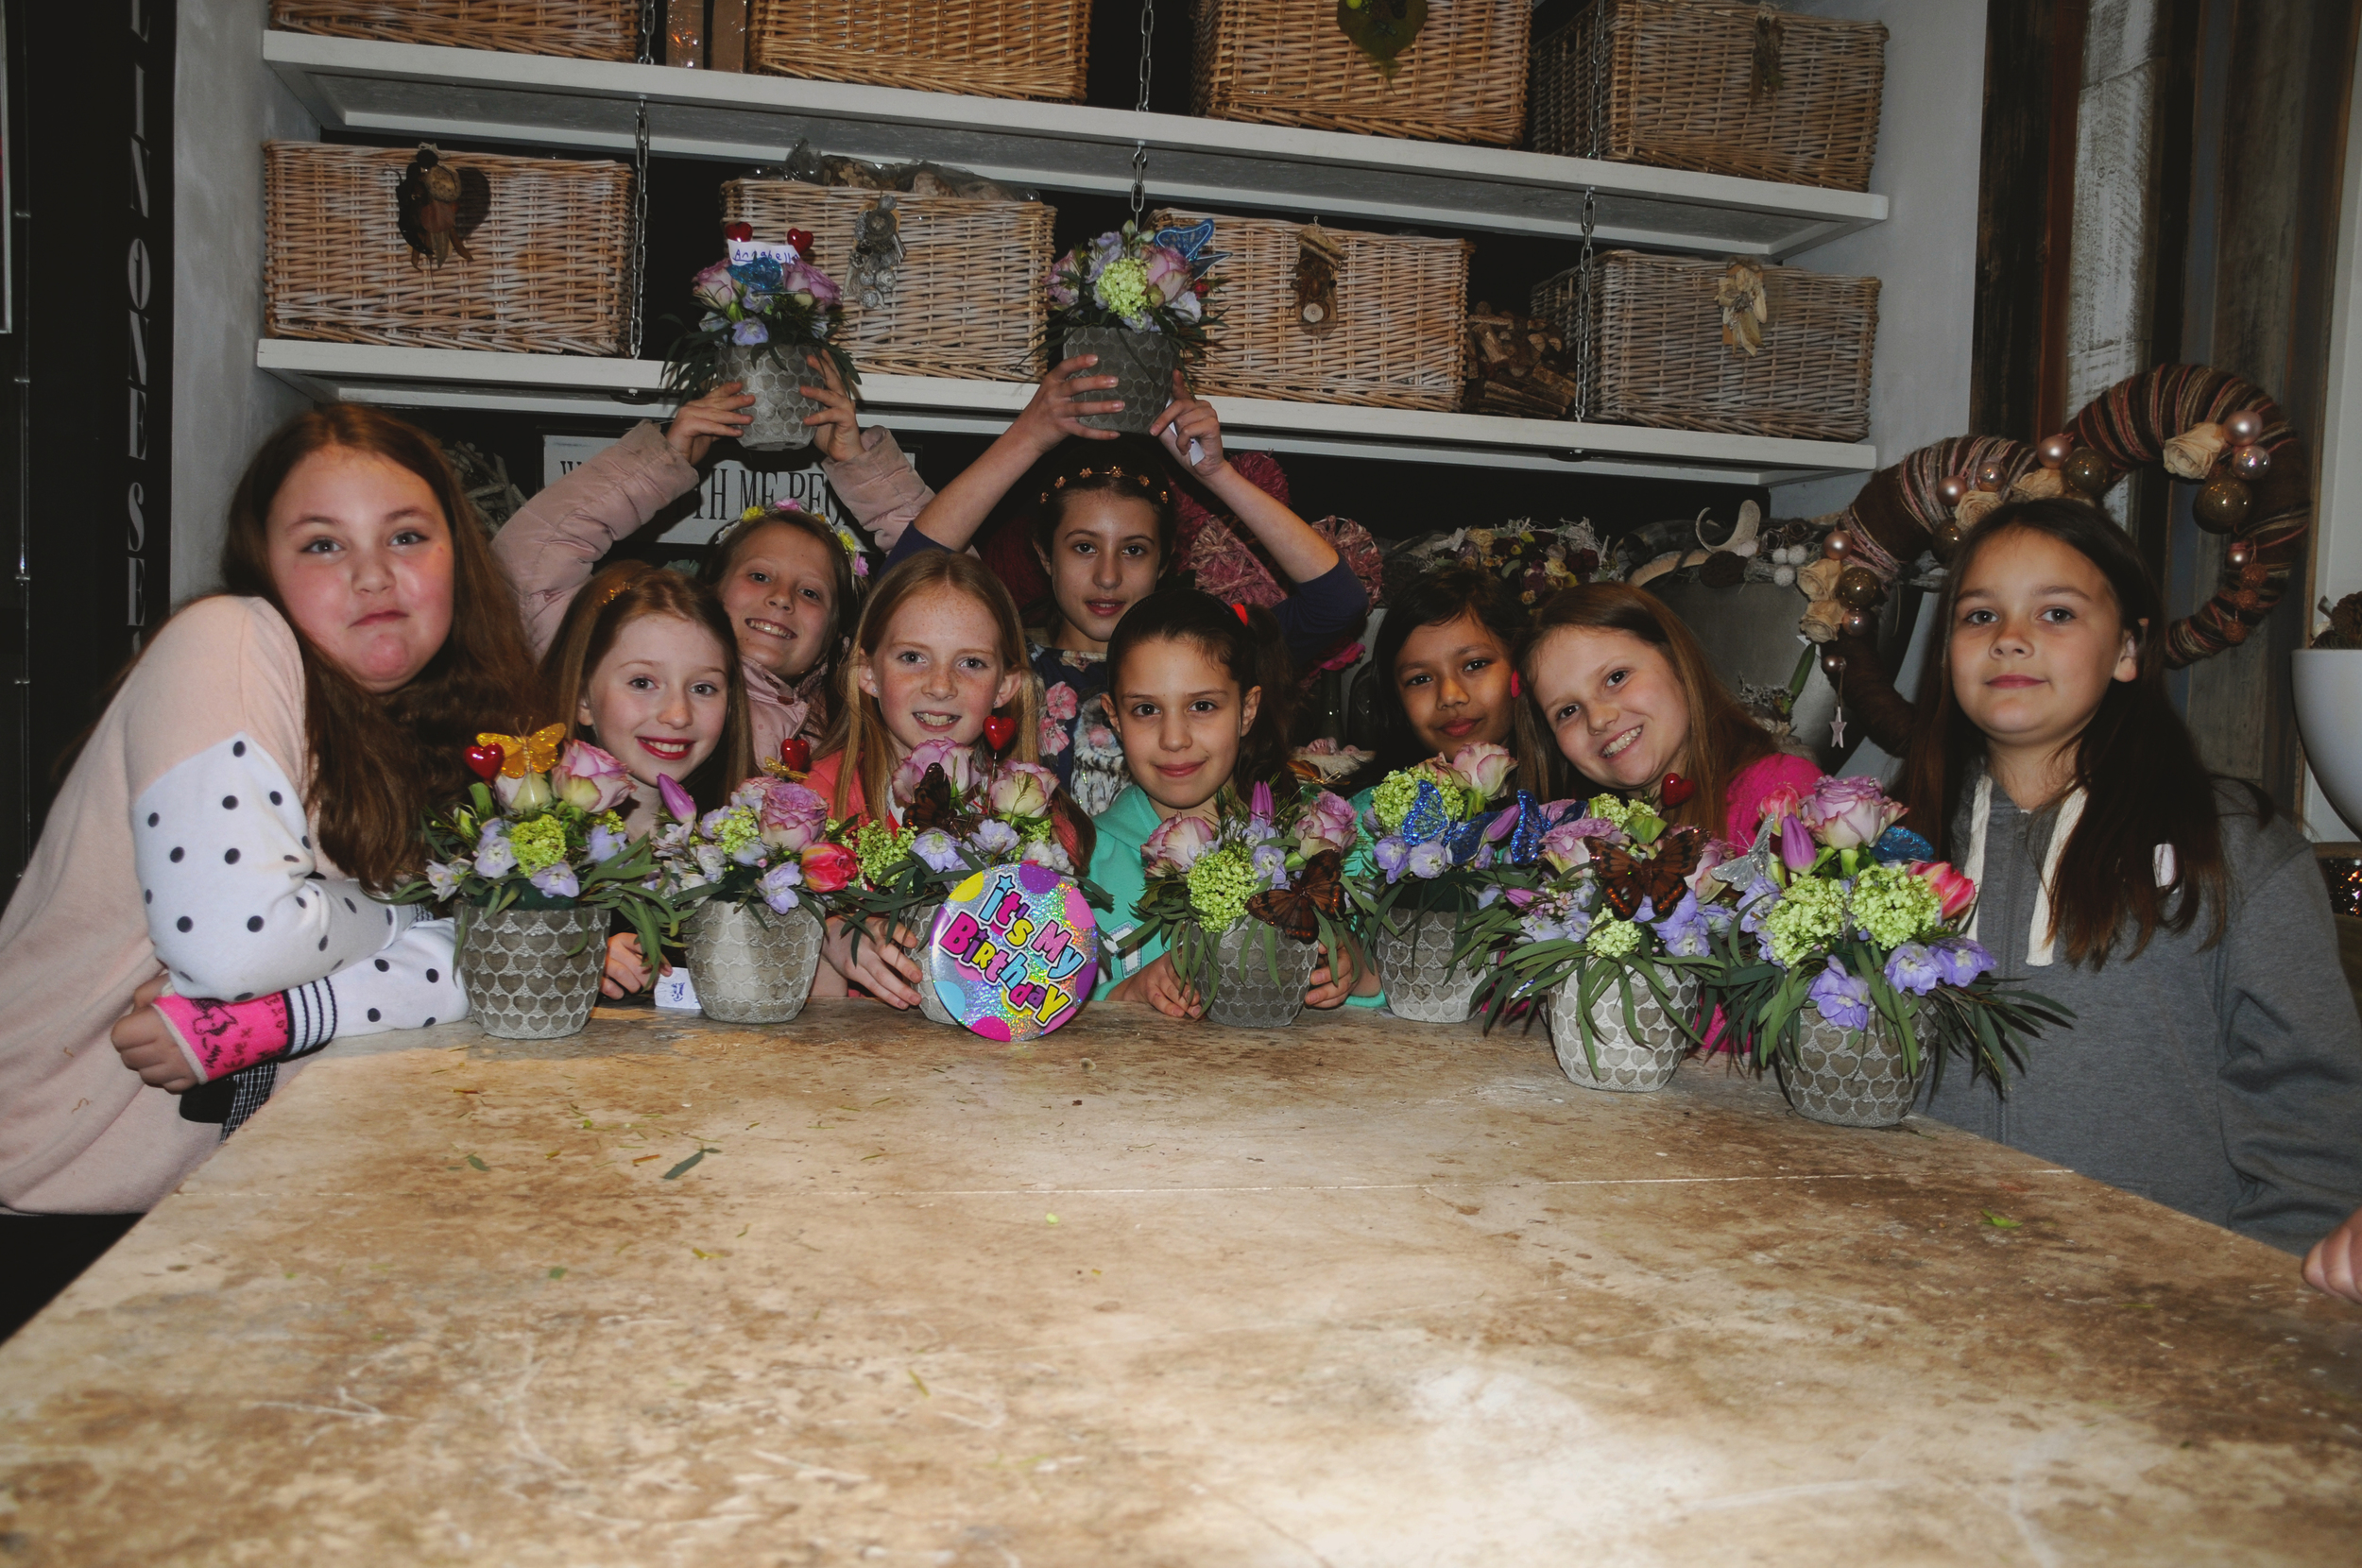 Dutch Floral Design childrens parties at All in One Season